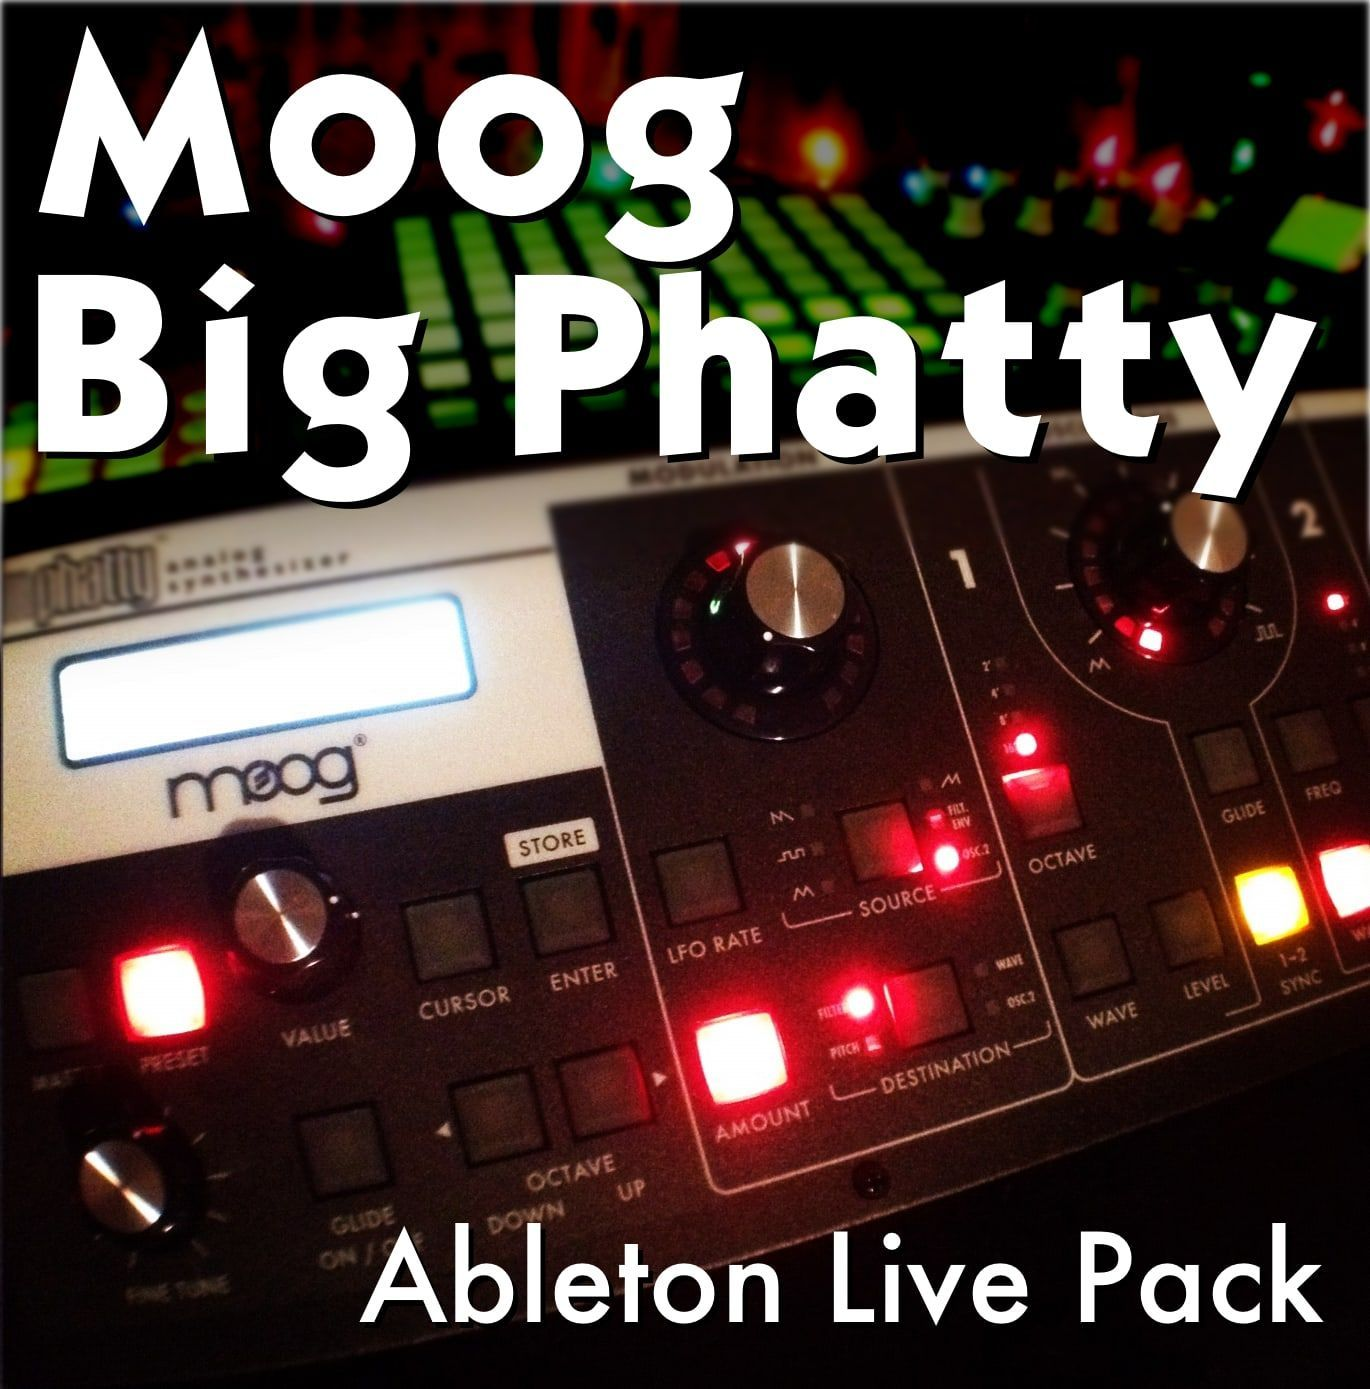 Big Phatty Ableton Live Pack in 2020 Ableton live